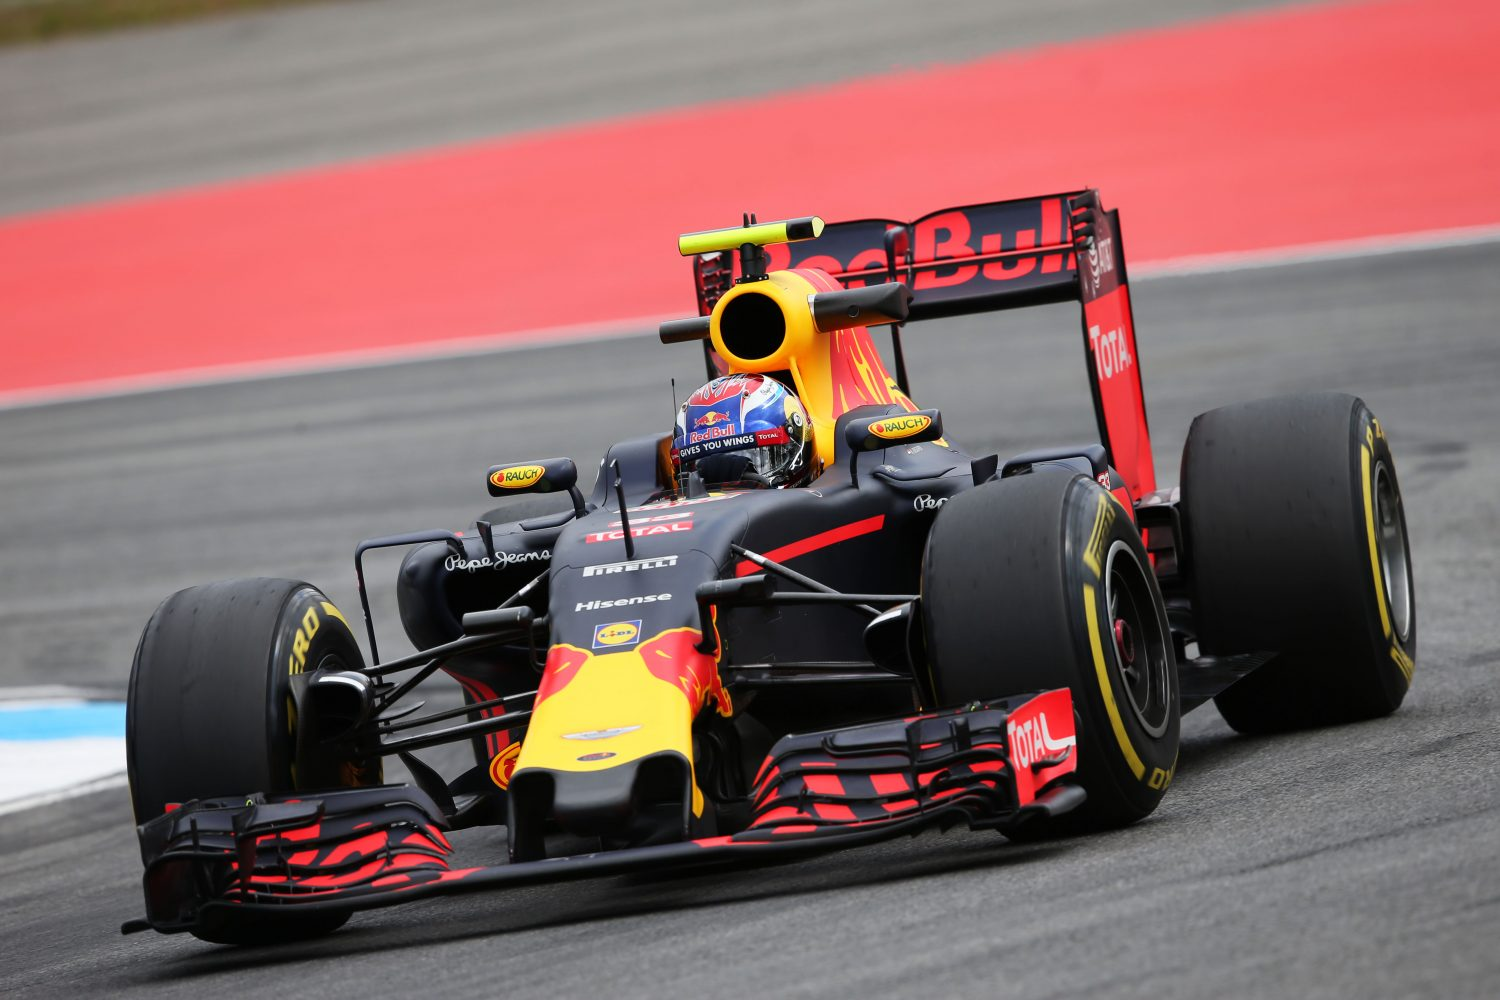 wallpapers german grand prix of 2016 marcos formula 1 page